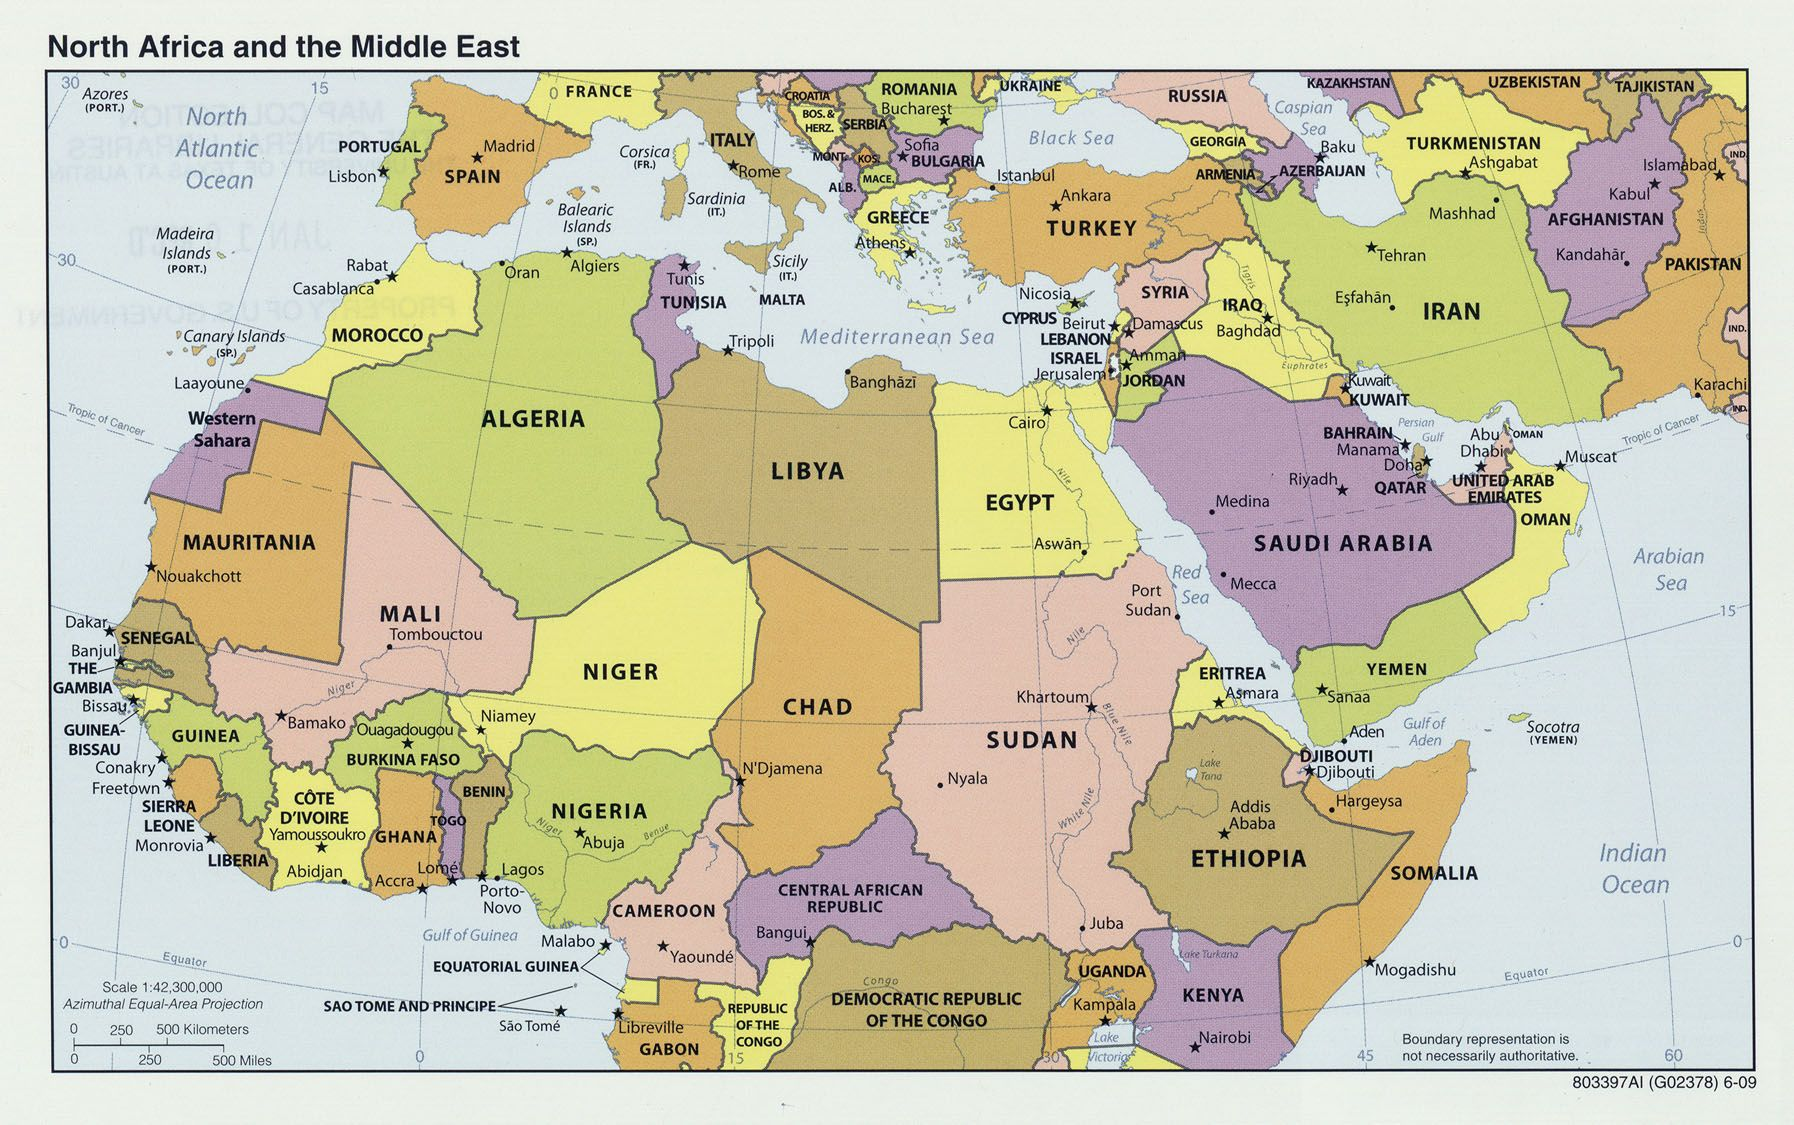 Middle East And Africa Map.North Africa Middle East Africa Pinterest Africa North Africa